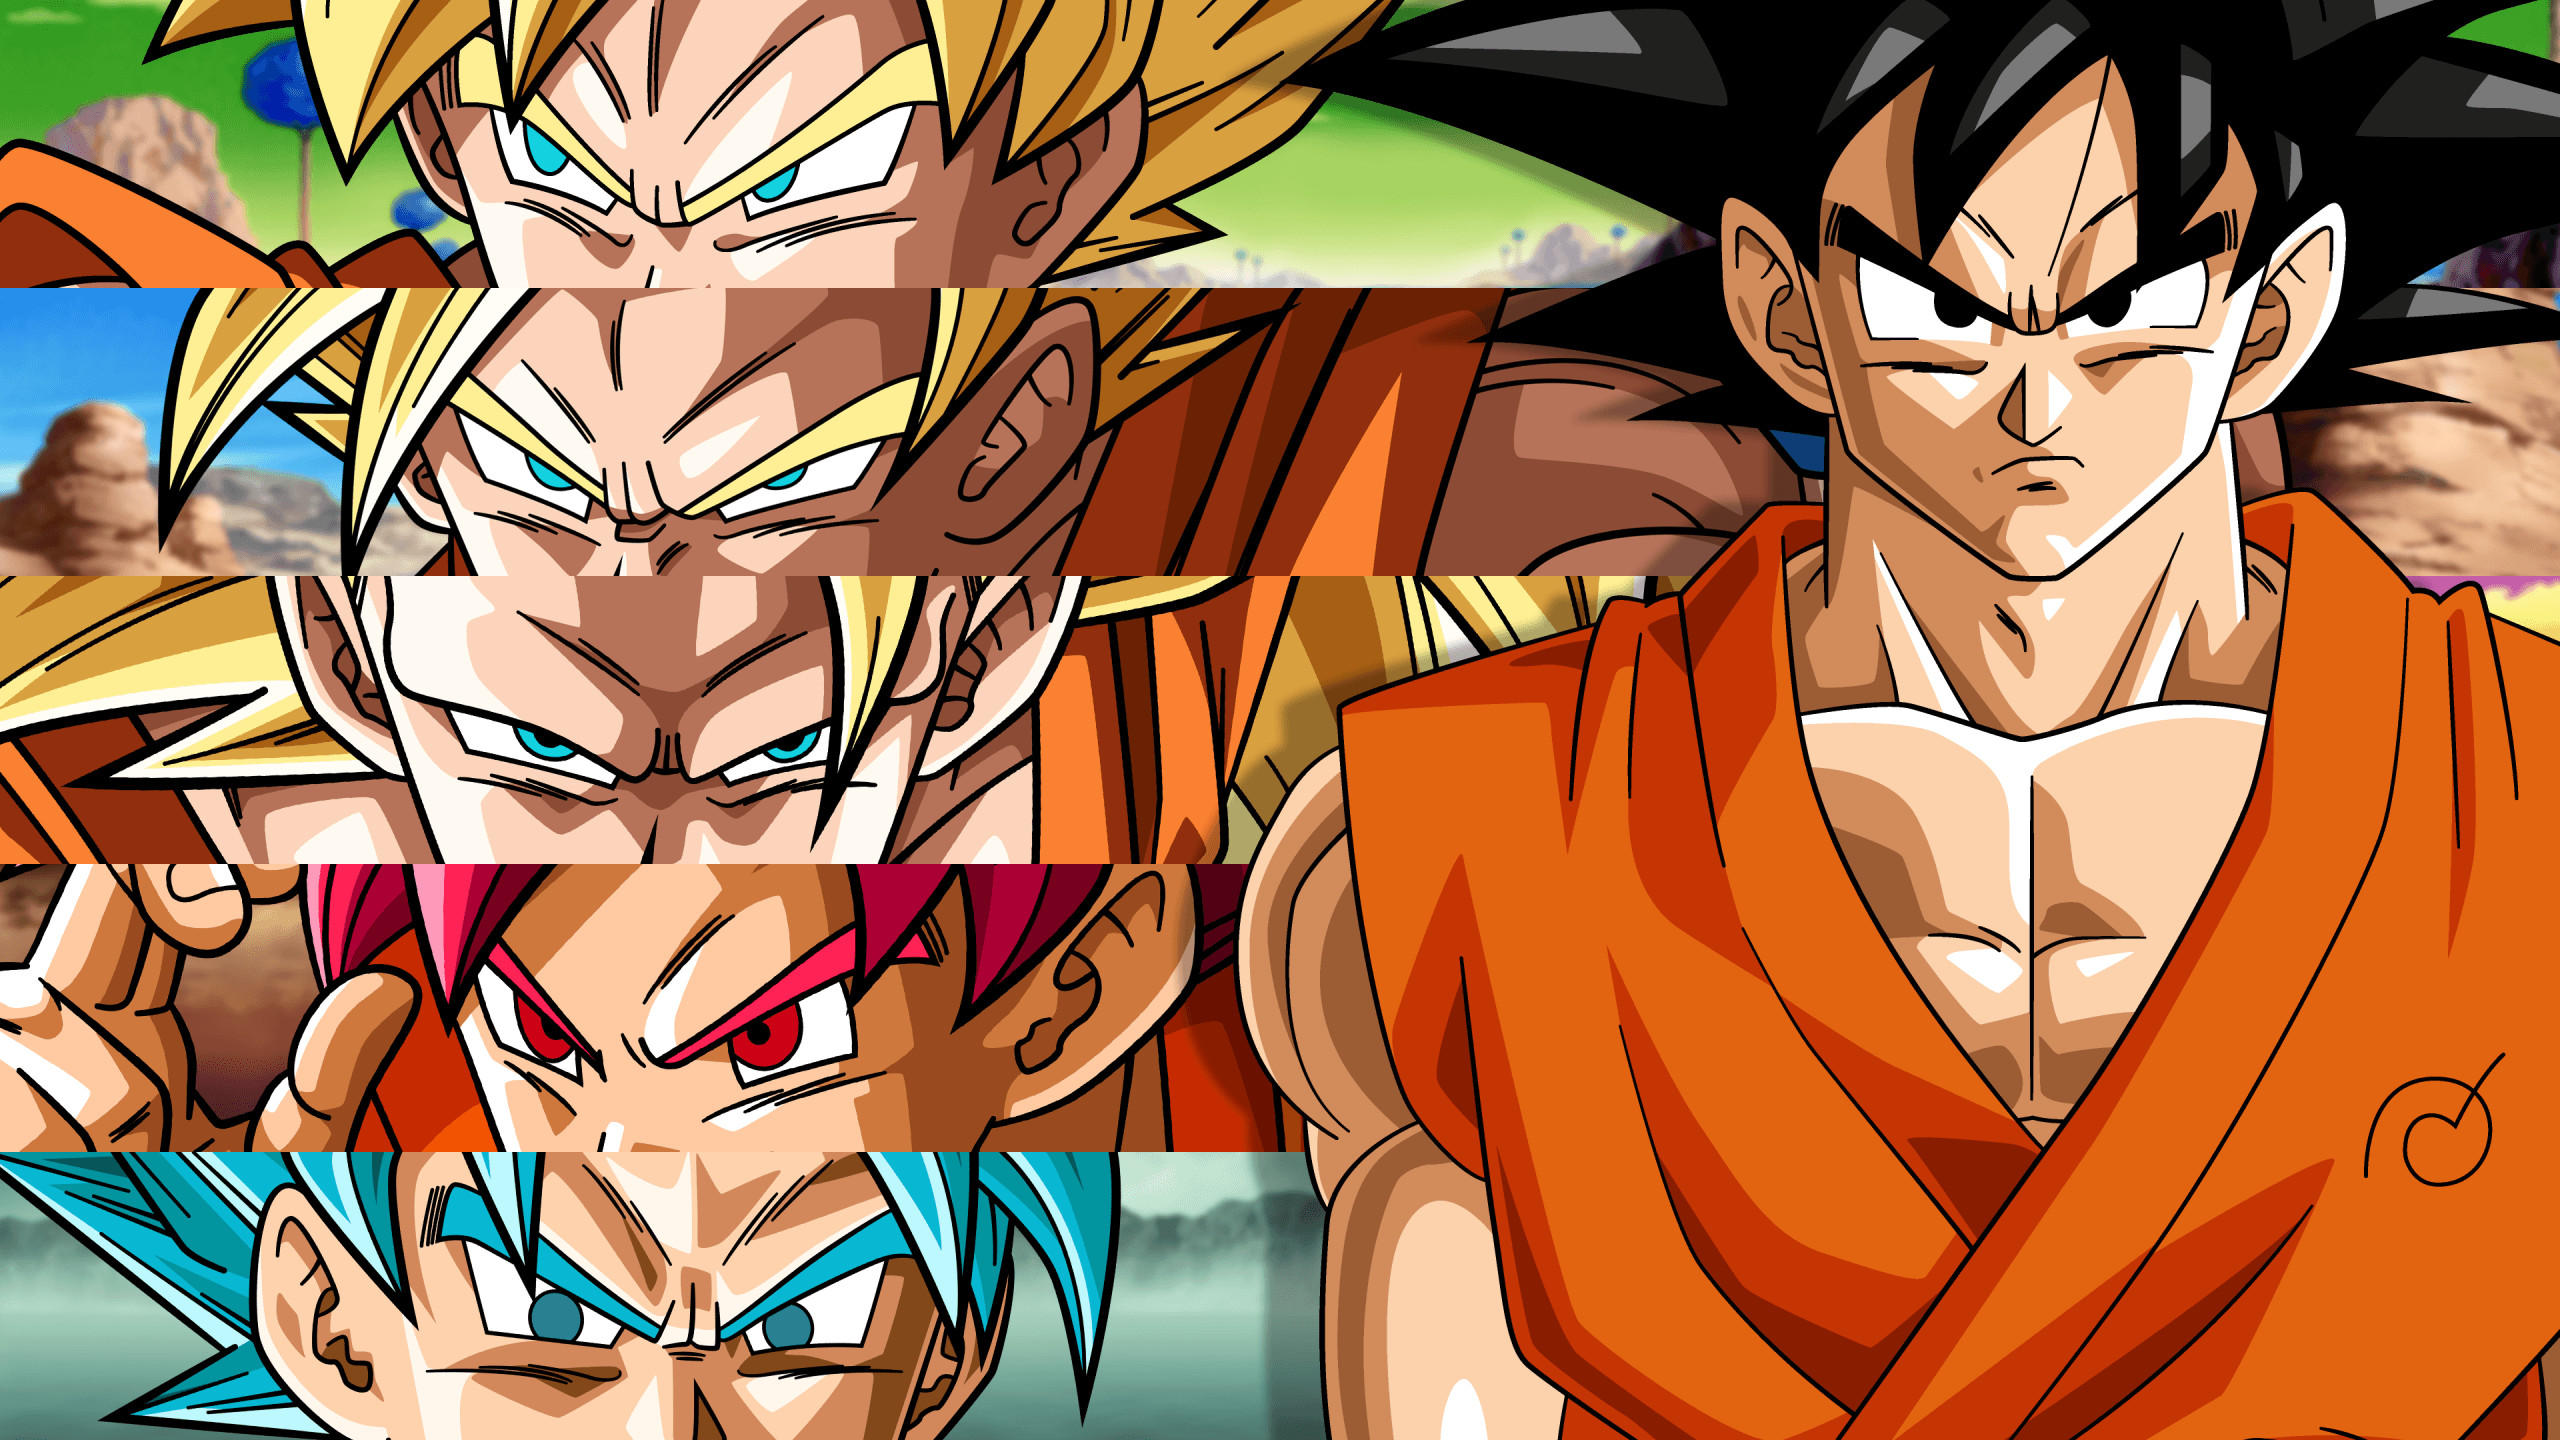 Res: 2560x1440, Dragon Ball Super Goku Wallpapers For Iphone